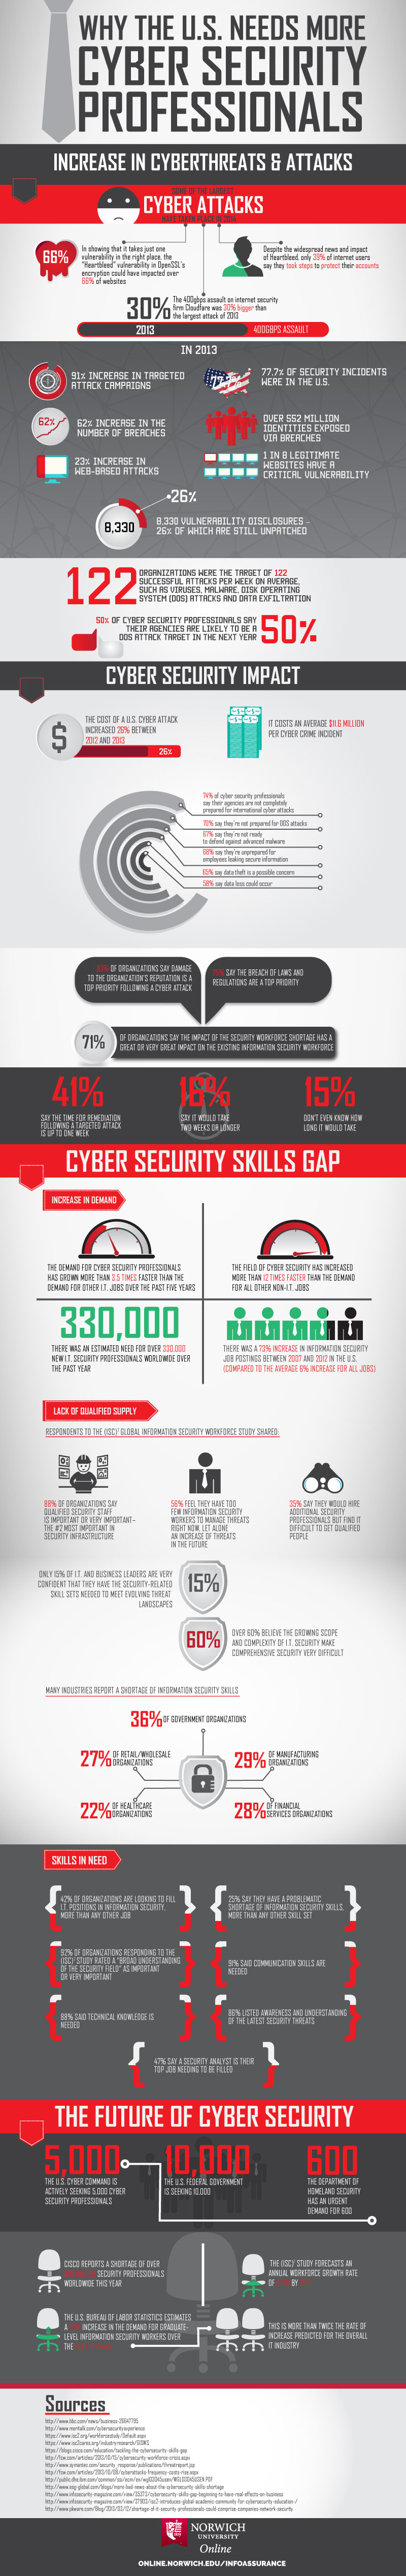 infographic on the need for cyber professionals